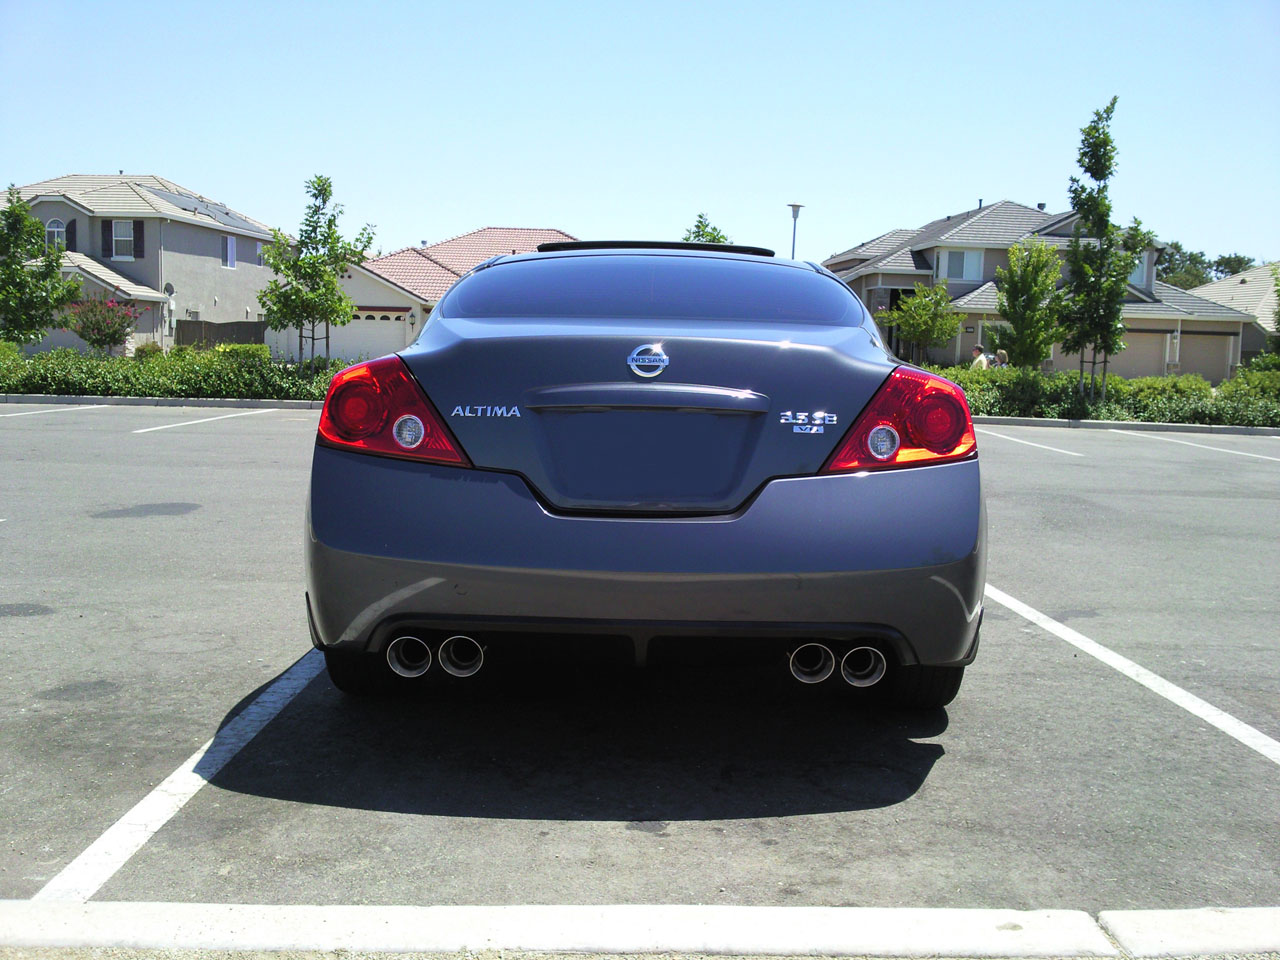 2008  Nissan Altima 3.5se COUPE picture, mods, upgrades